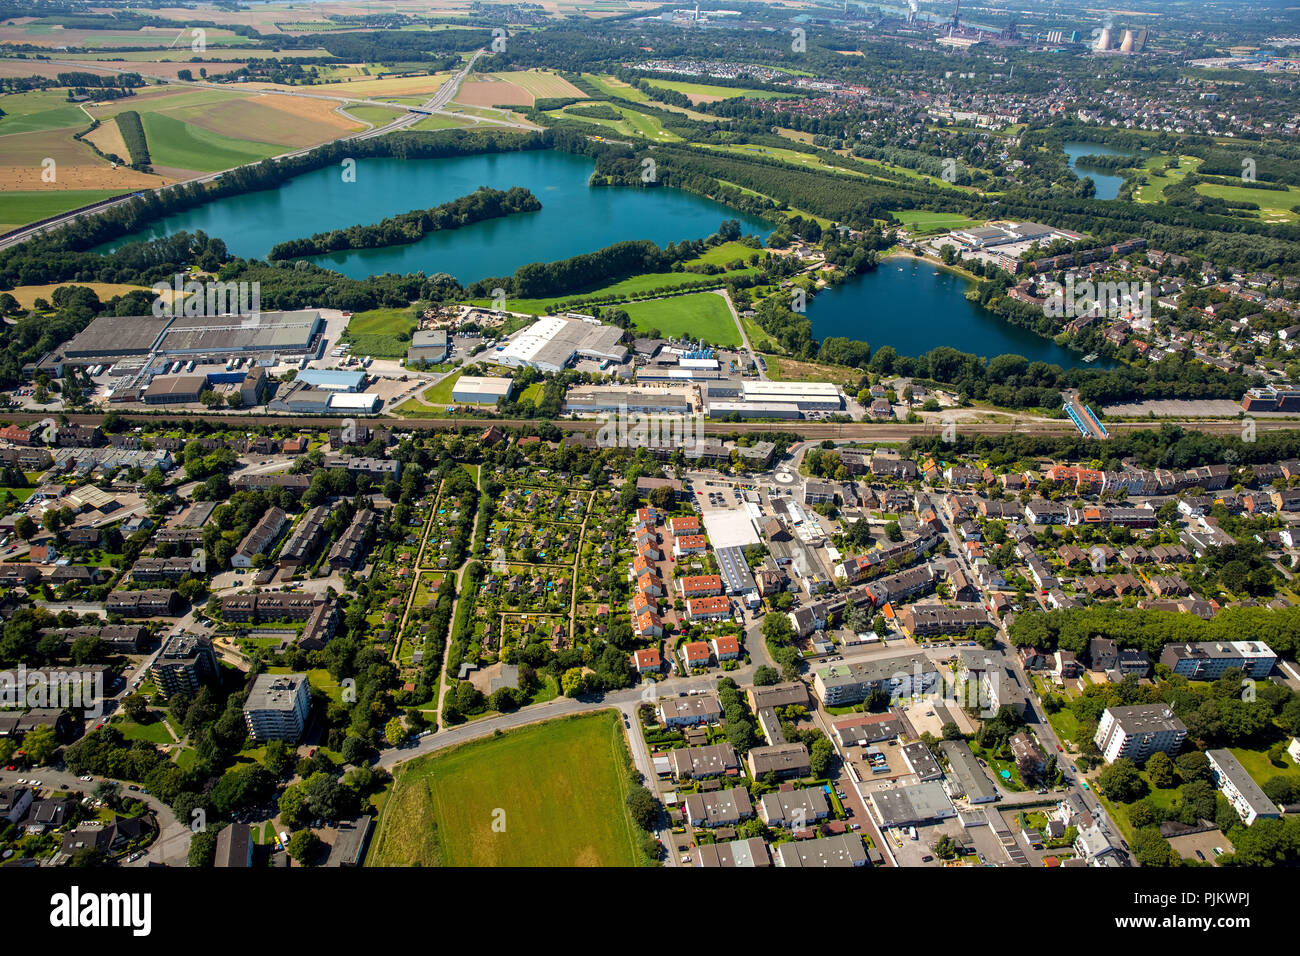 Duisburg, Ruhr area, North Rhine-Westphalia, Germany Stock Photo